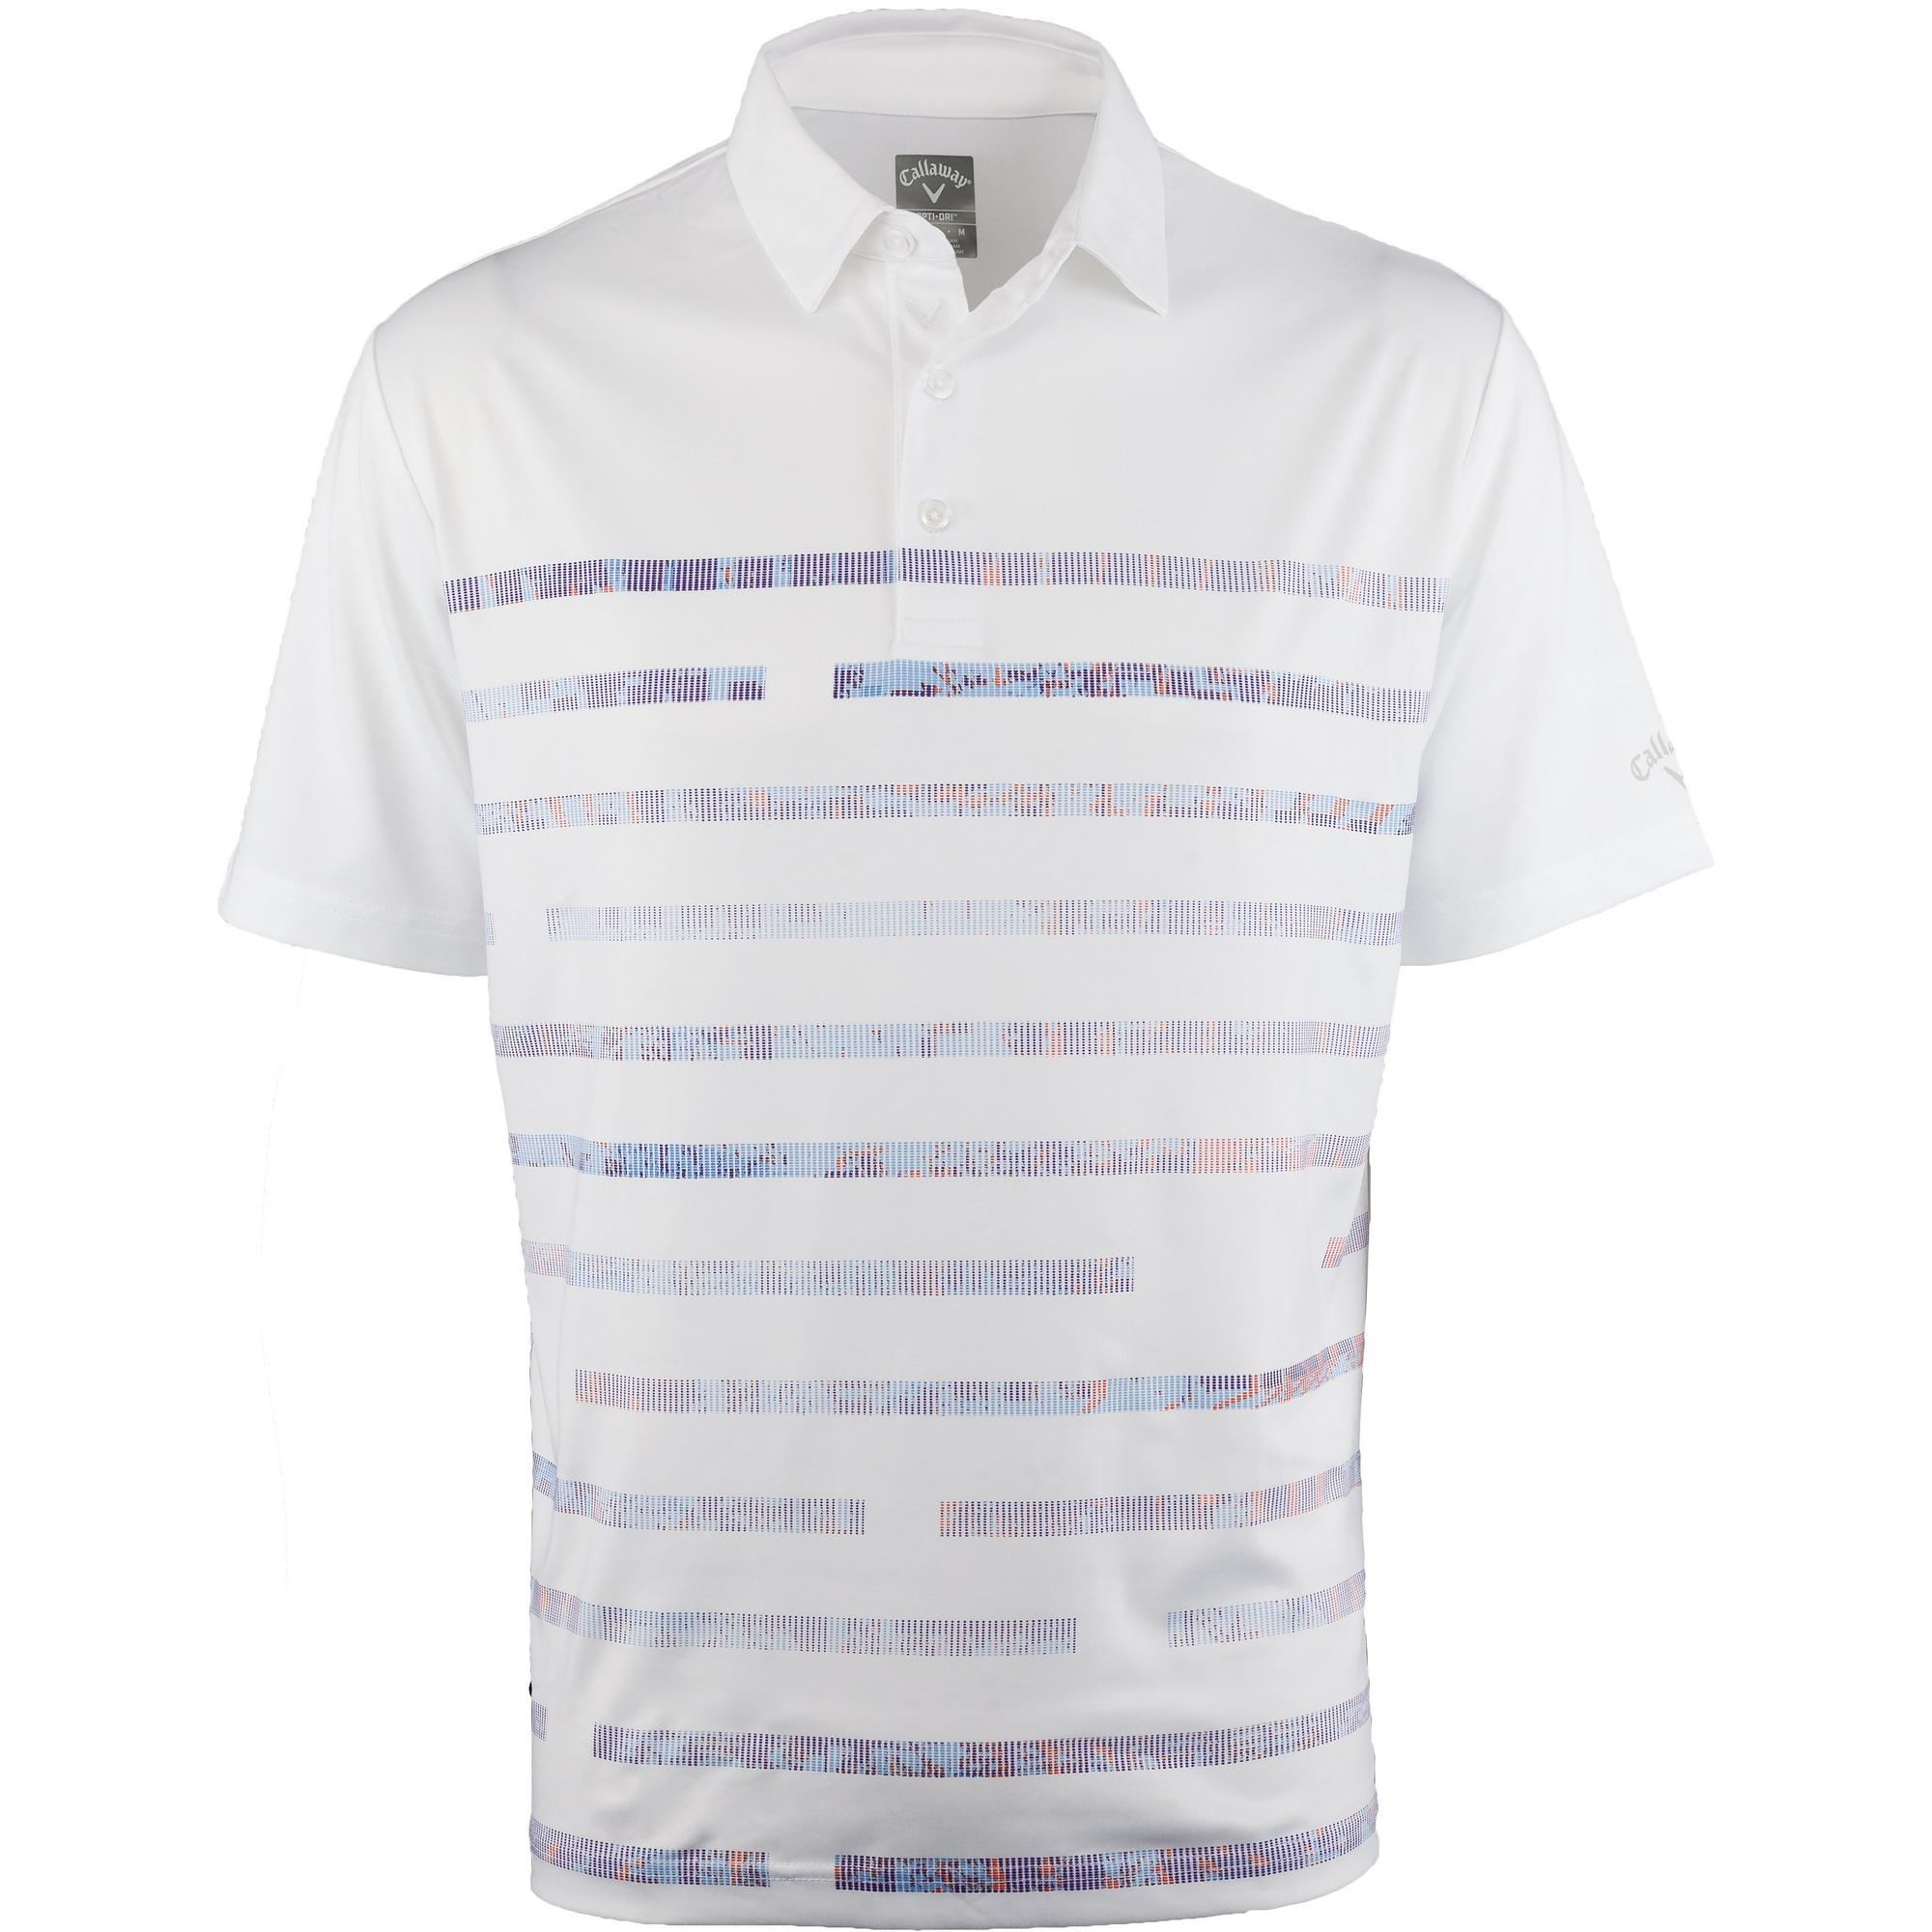 Men's Stretch Textured Linear Printed Short Sleeve Polo